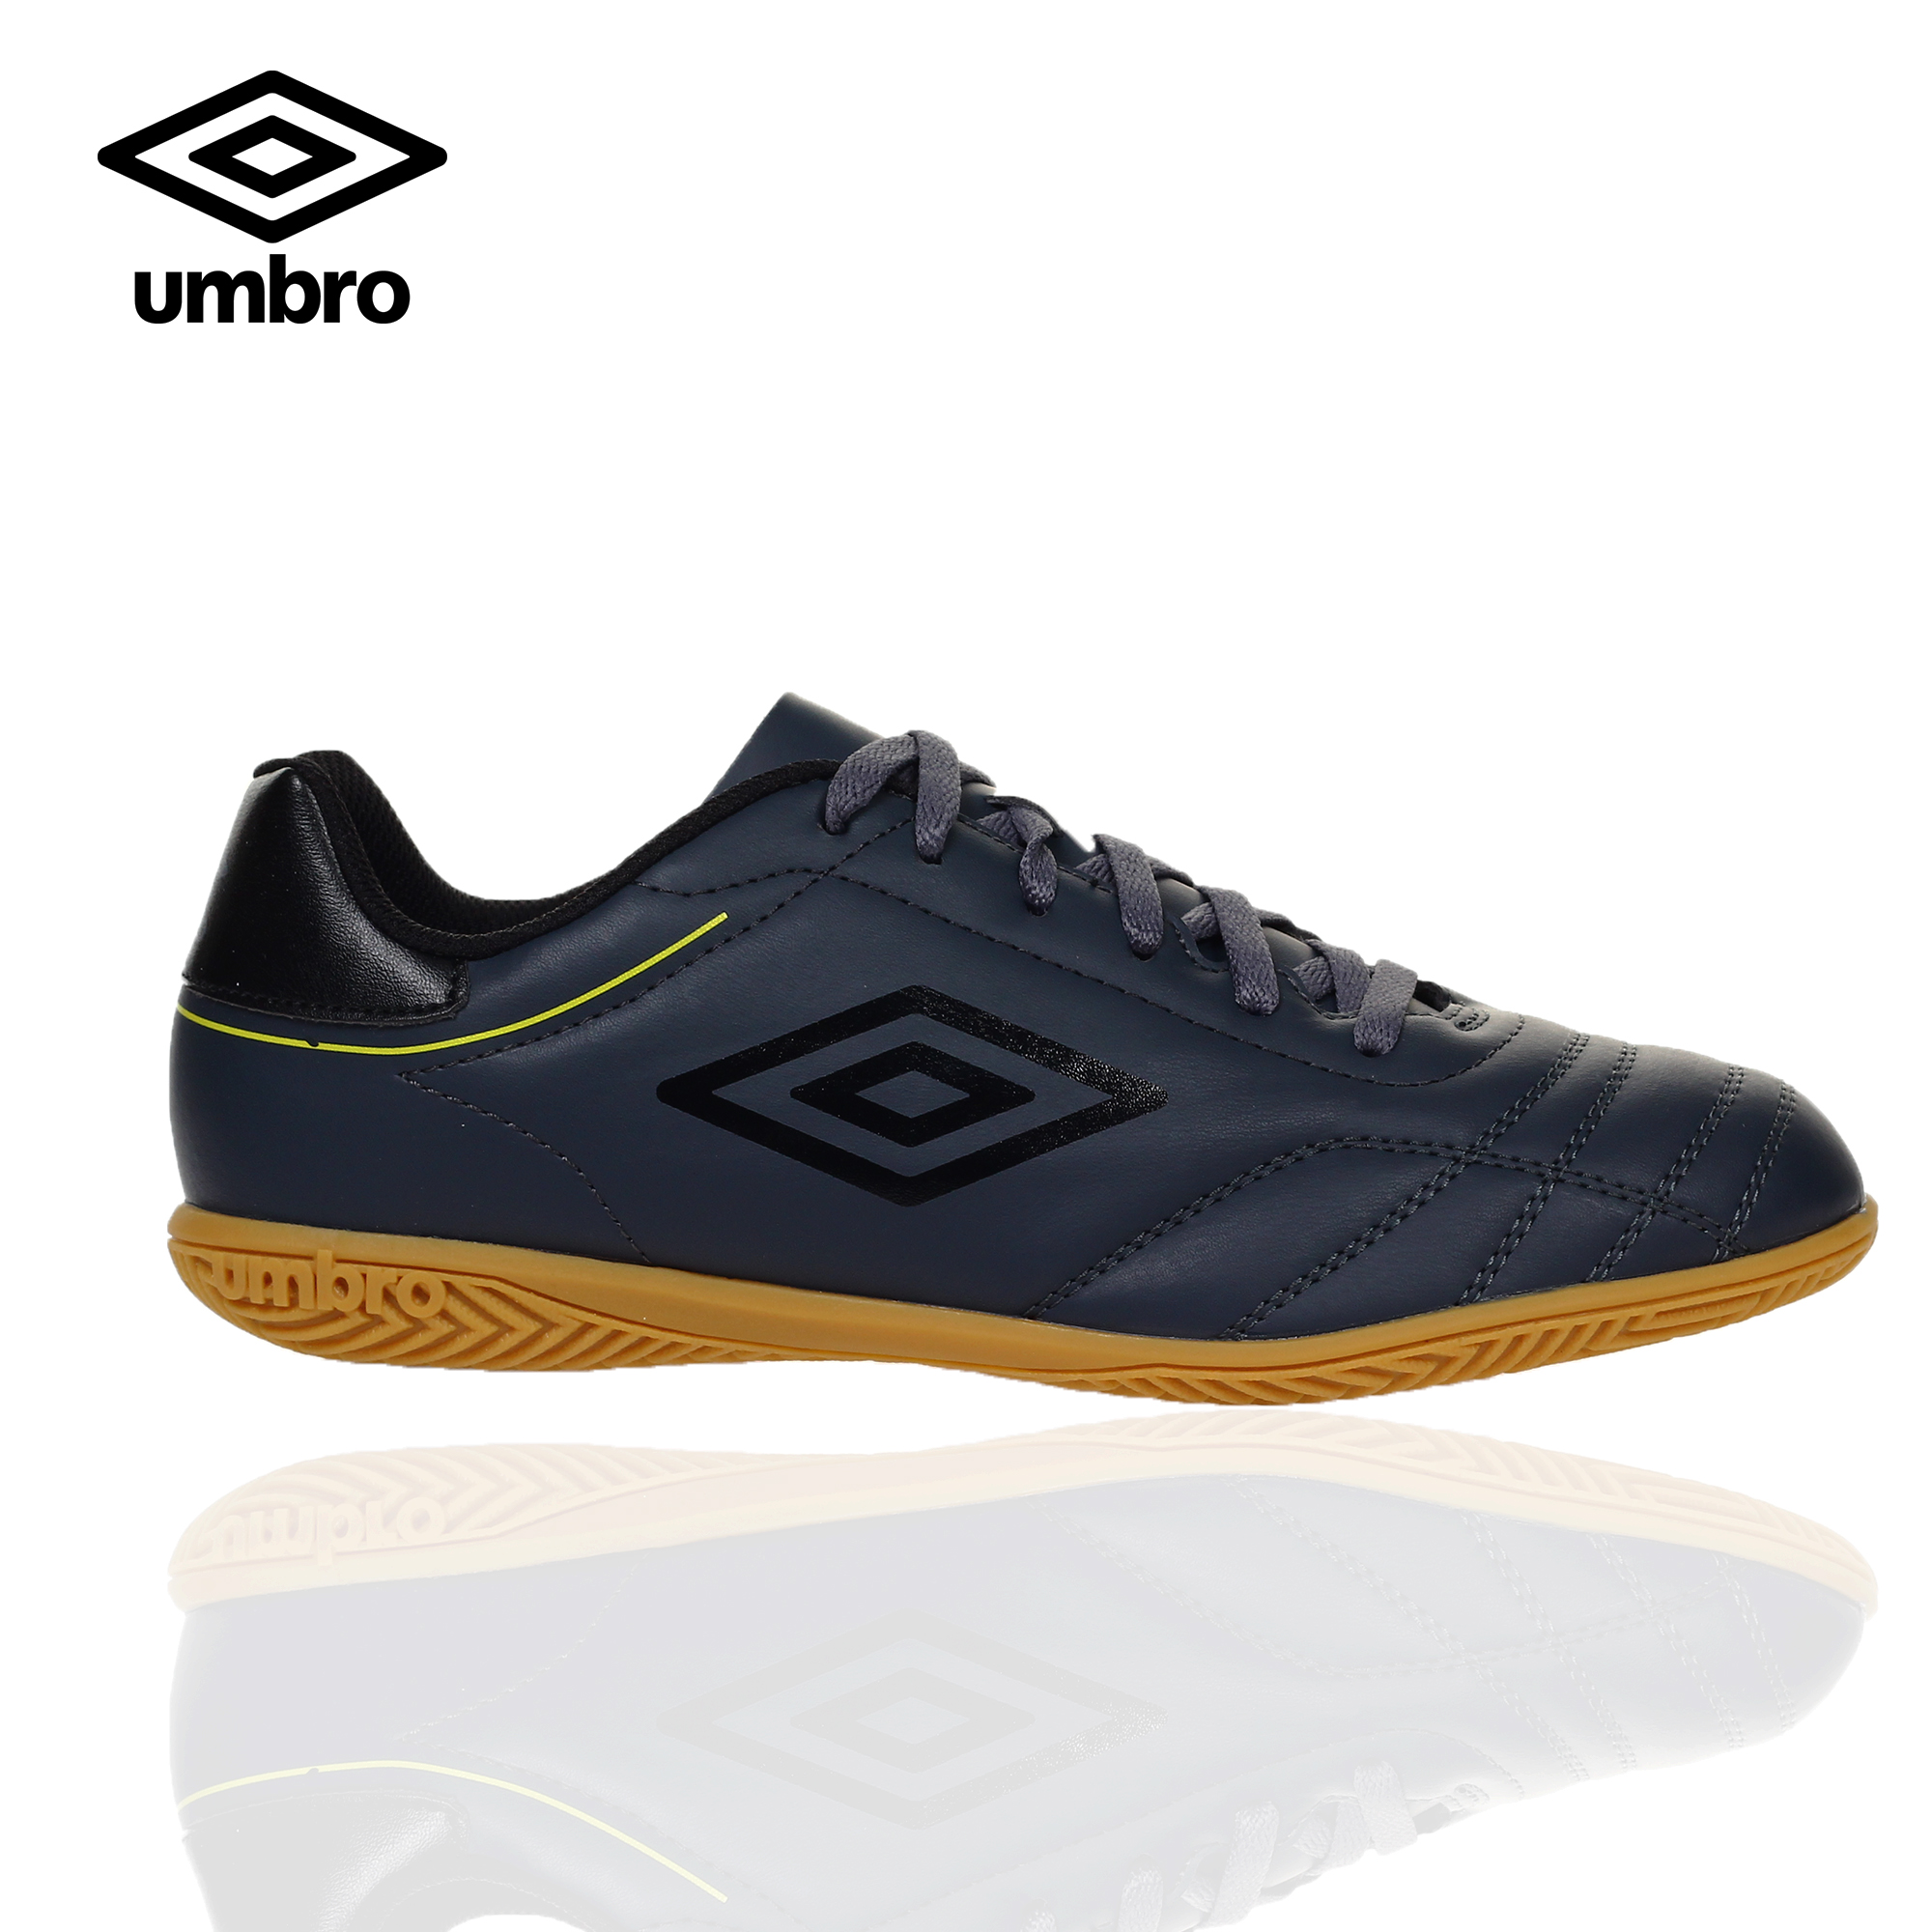 Umbro Classico VIII IC Futsal Shoes for